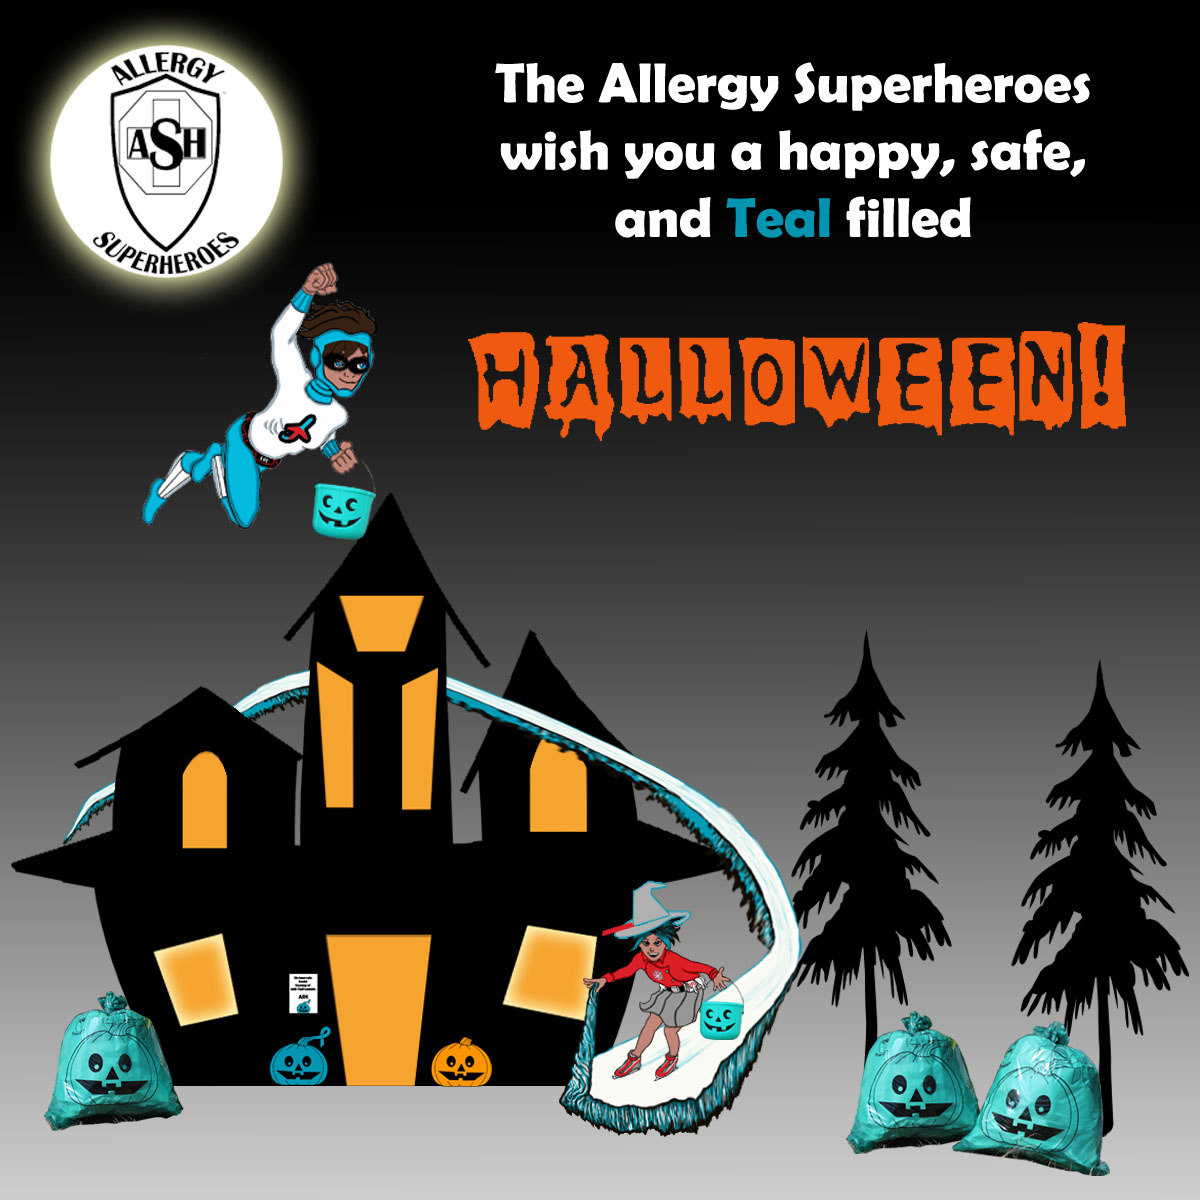 Happy Teal Halloween from the Allergy Superheroes!